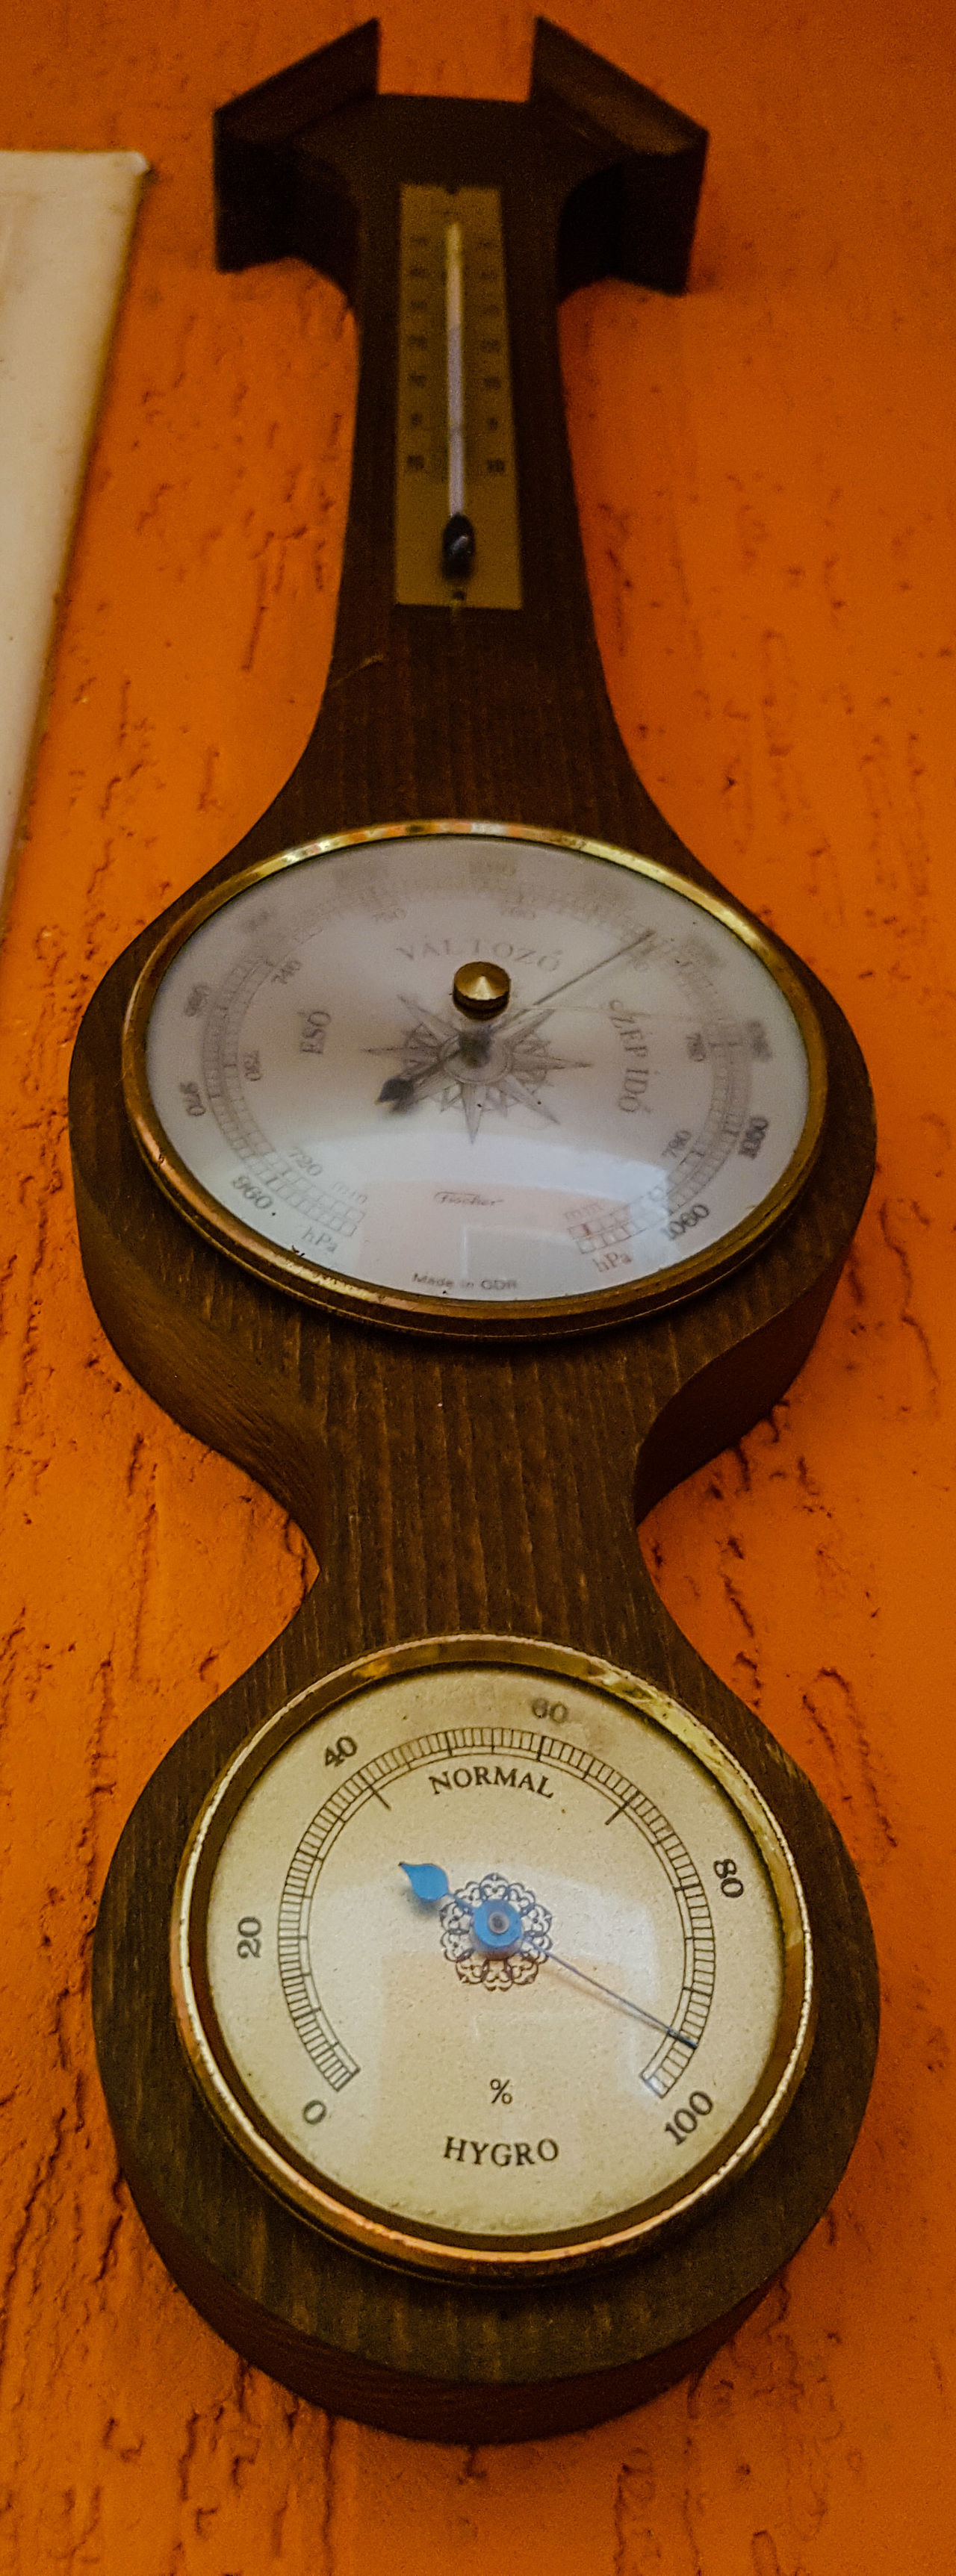 Old Hungarian thermometer/barometer/hygrometer Barometer Hygrometer Thermometer Hungarian Old Old-fashioned